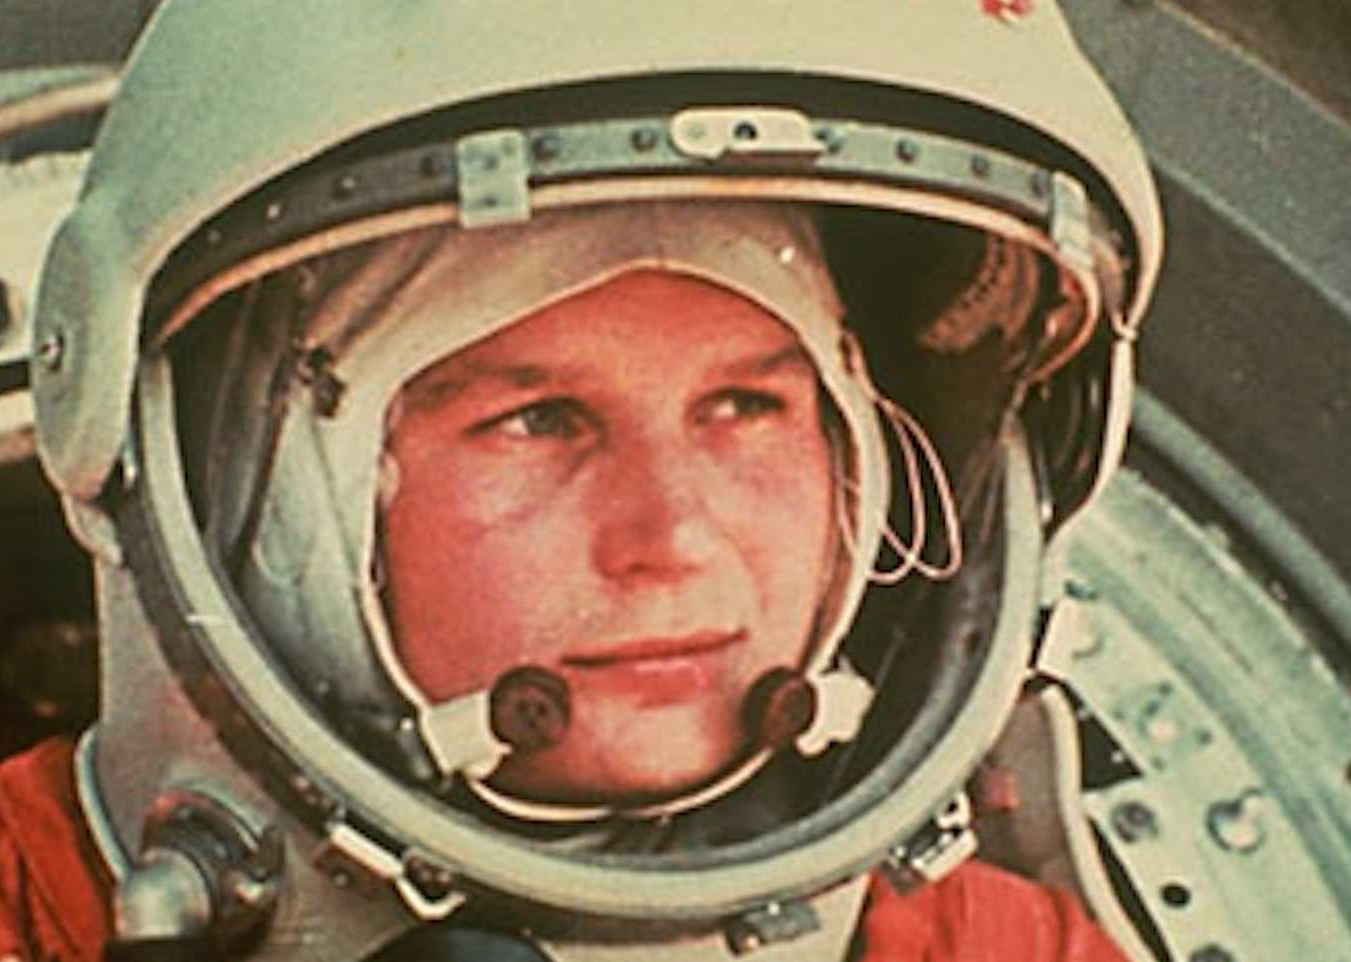 the-first-woman-in-space-almost-didnt-make-it-back-to-earth-and-she-had-to-keep-it-a-secret-for-30-years.jpg